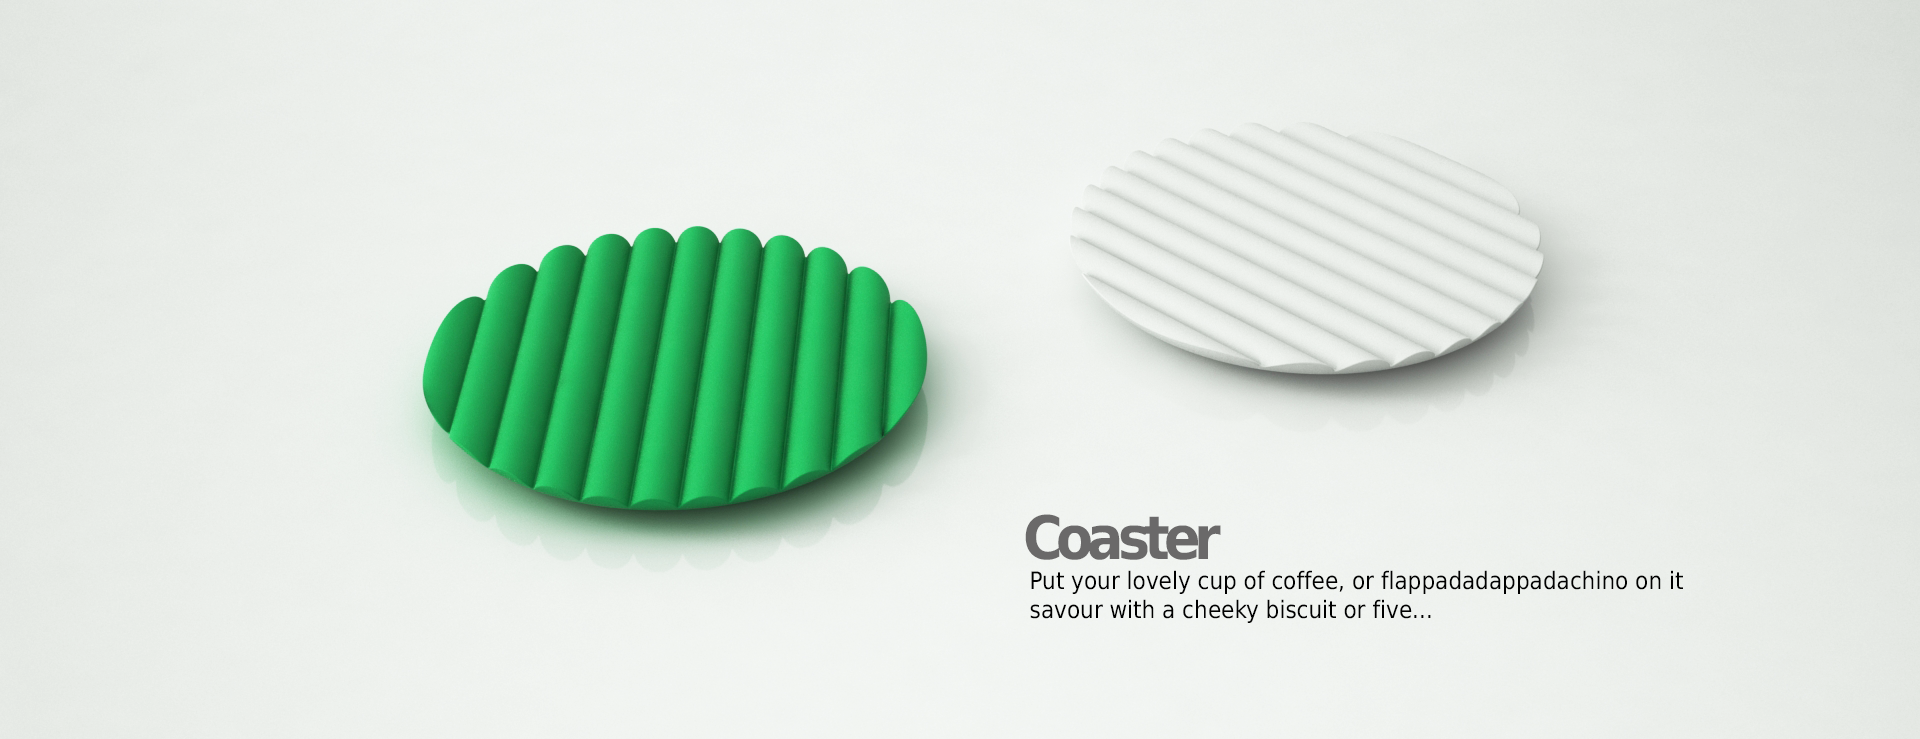 Coaster for cups